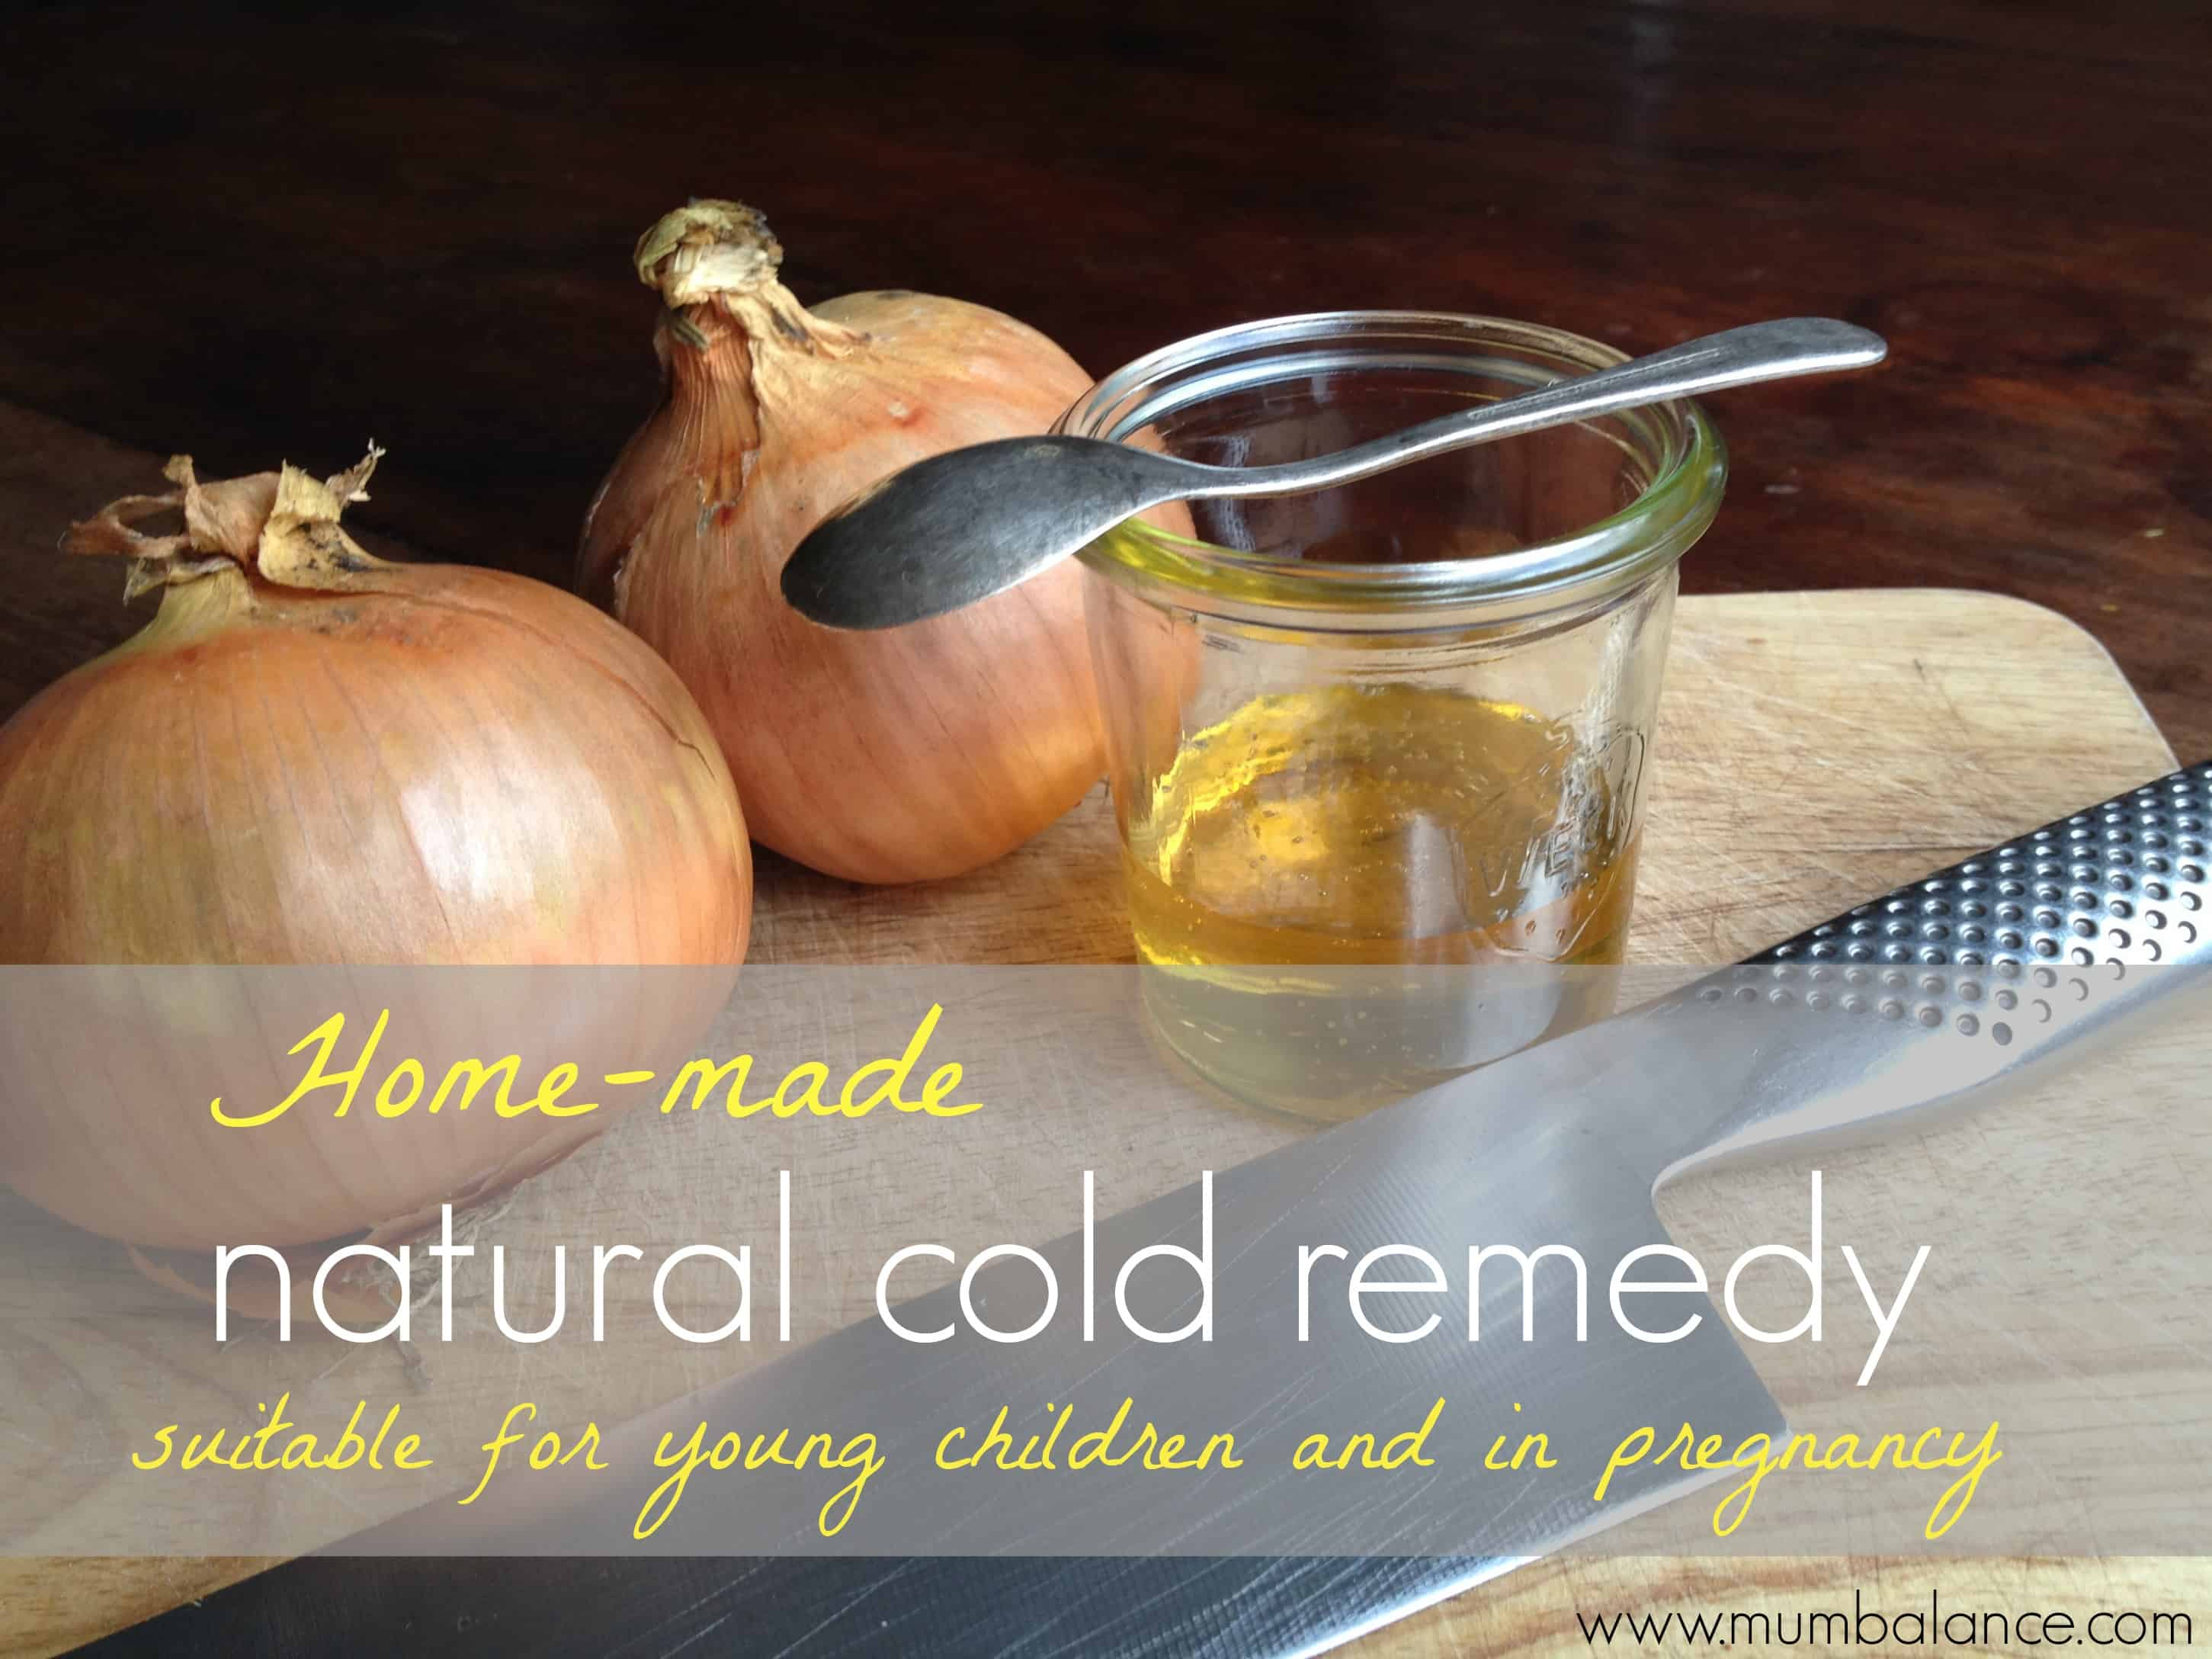 Child and pregnancy safe netural cold remedy